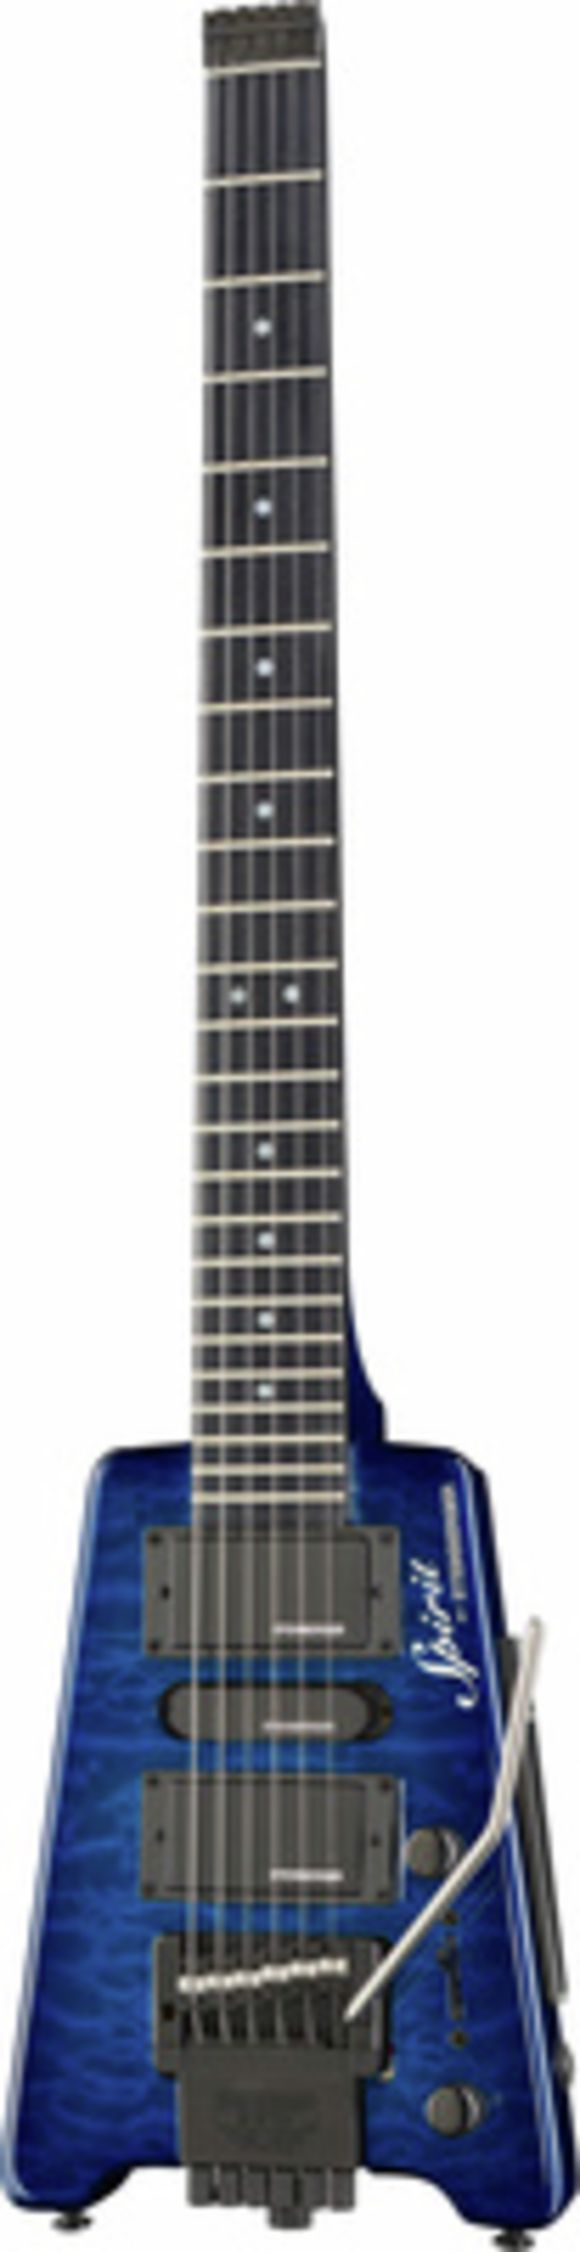 GT-Pro Quilt Top Deluxe TL Steinberger